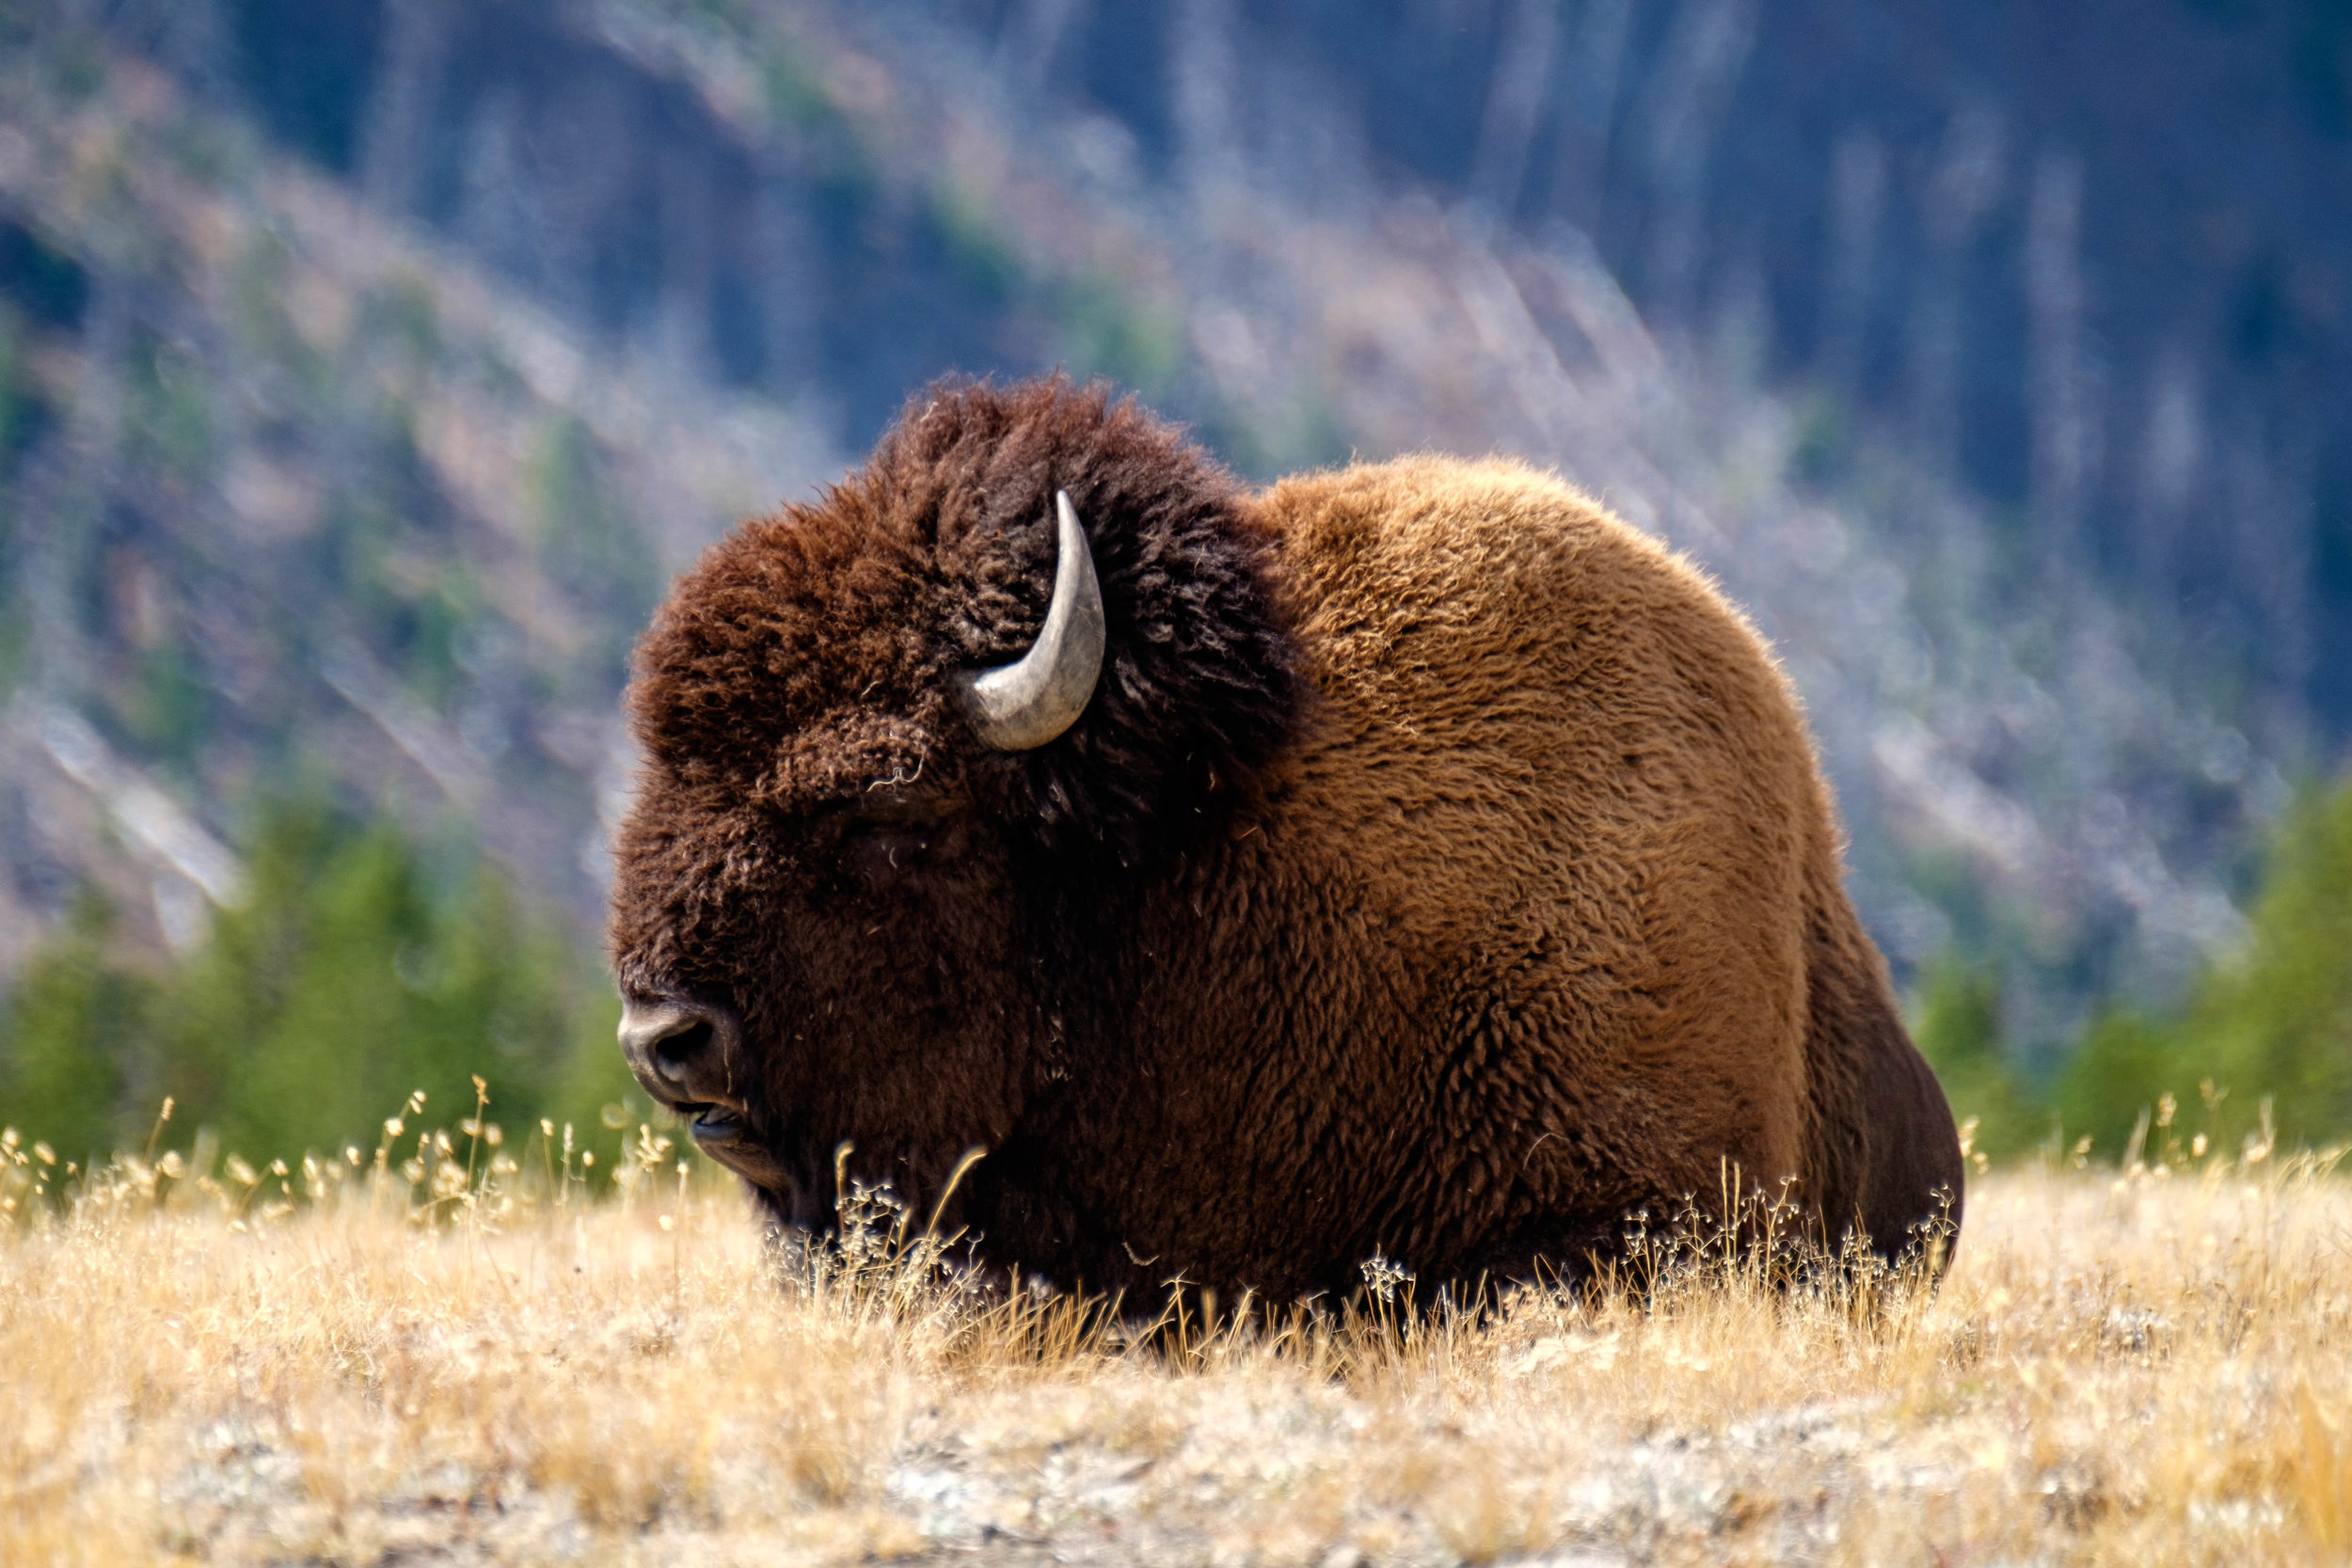 The National Park Service chose this animal, the American bison, to represent all of American wildlife on their logo insignia.